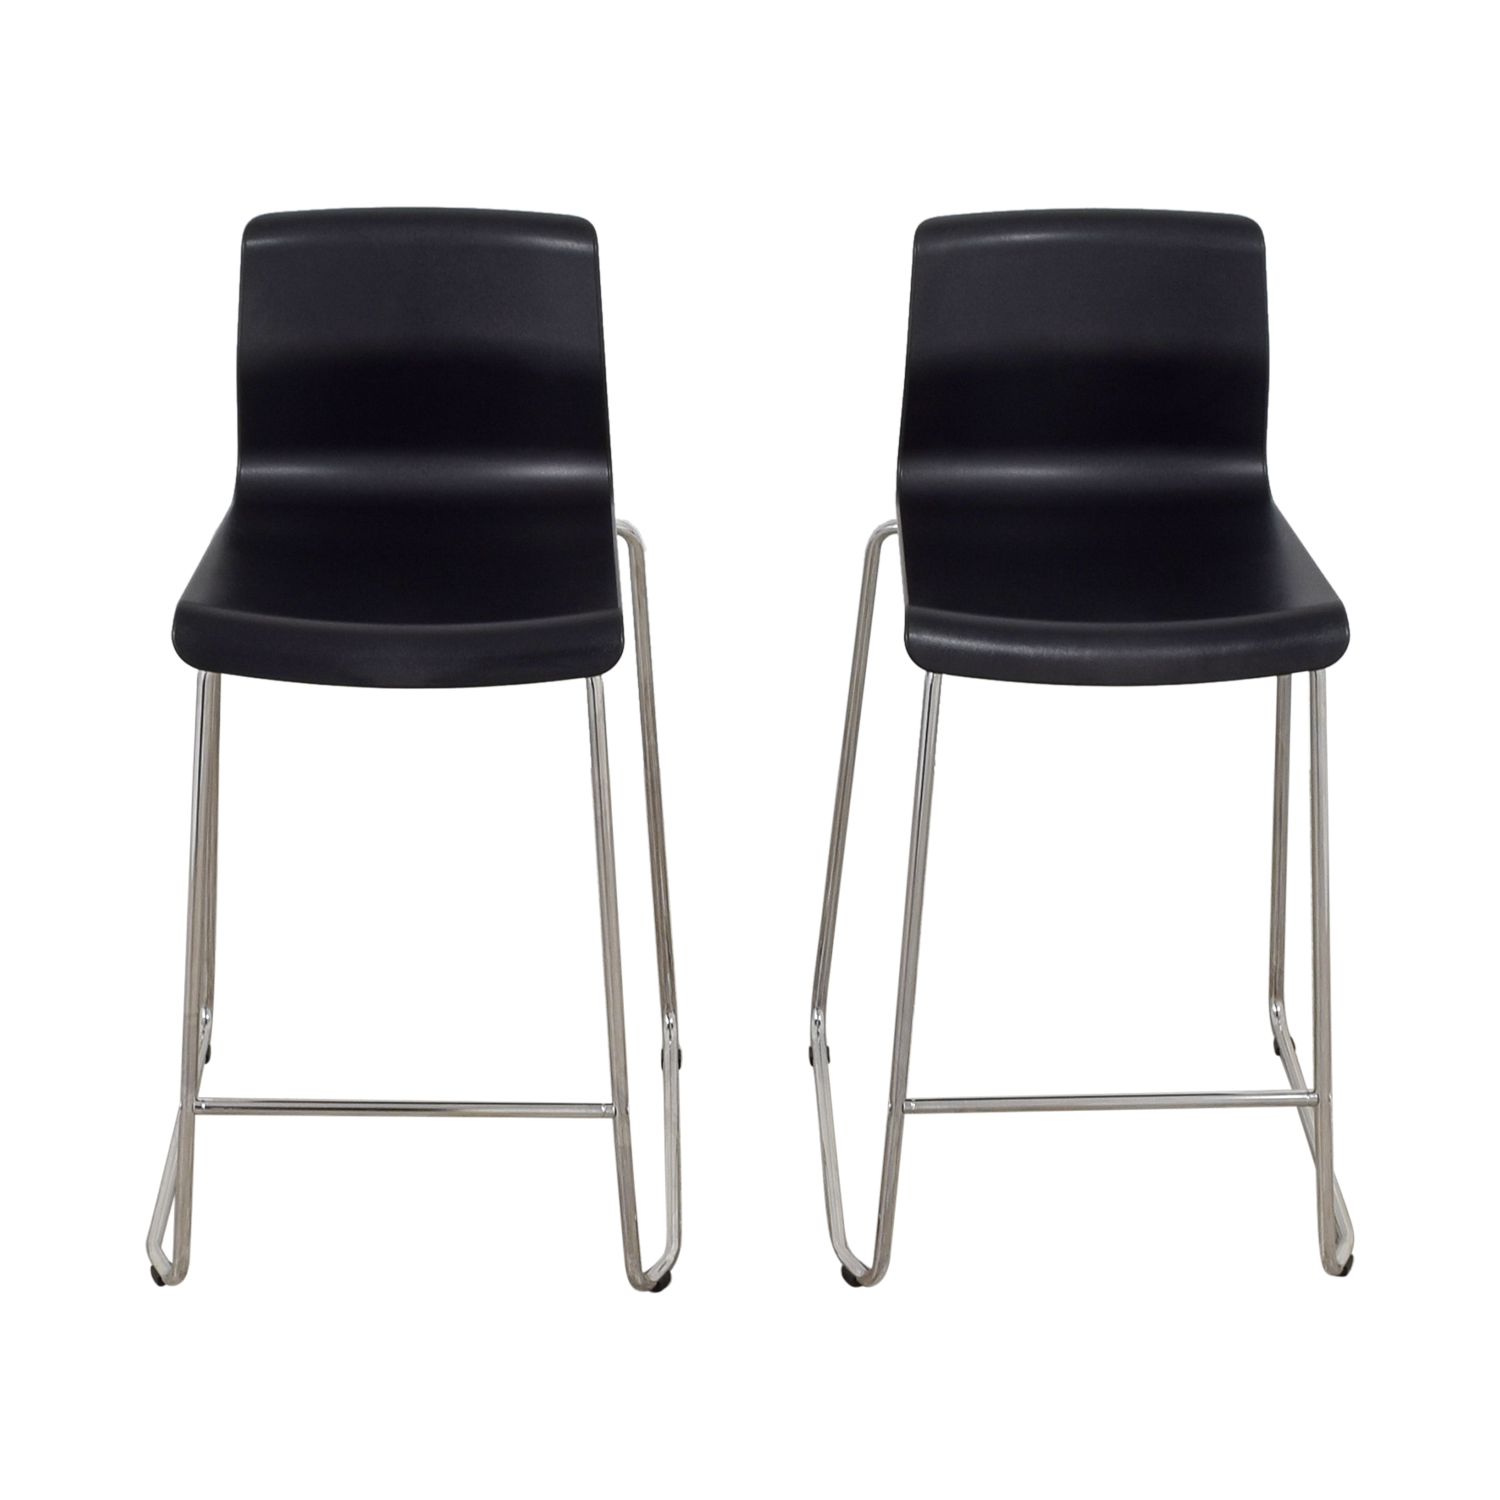 81 off ikea ikea black and metal bar stools chairs. Black Bedroom Furniture Sets. Home Design Ideas